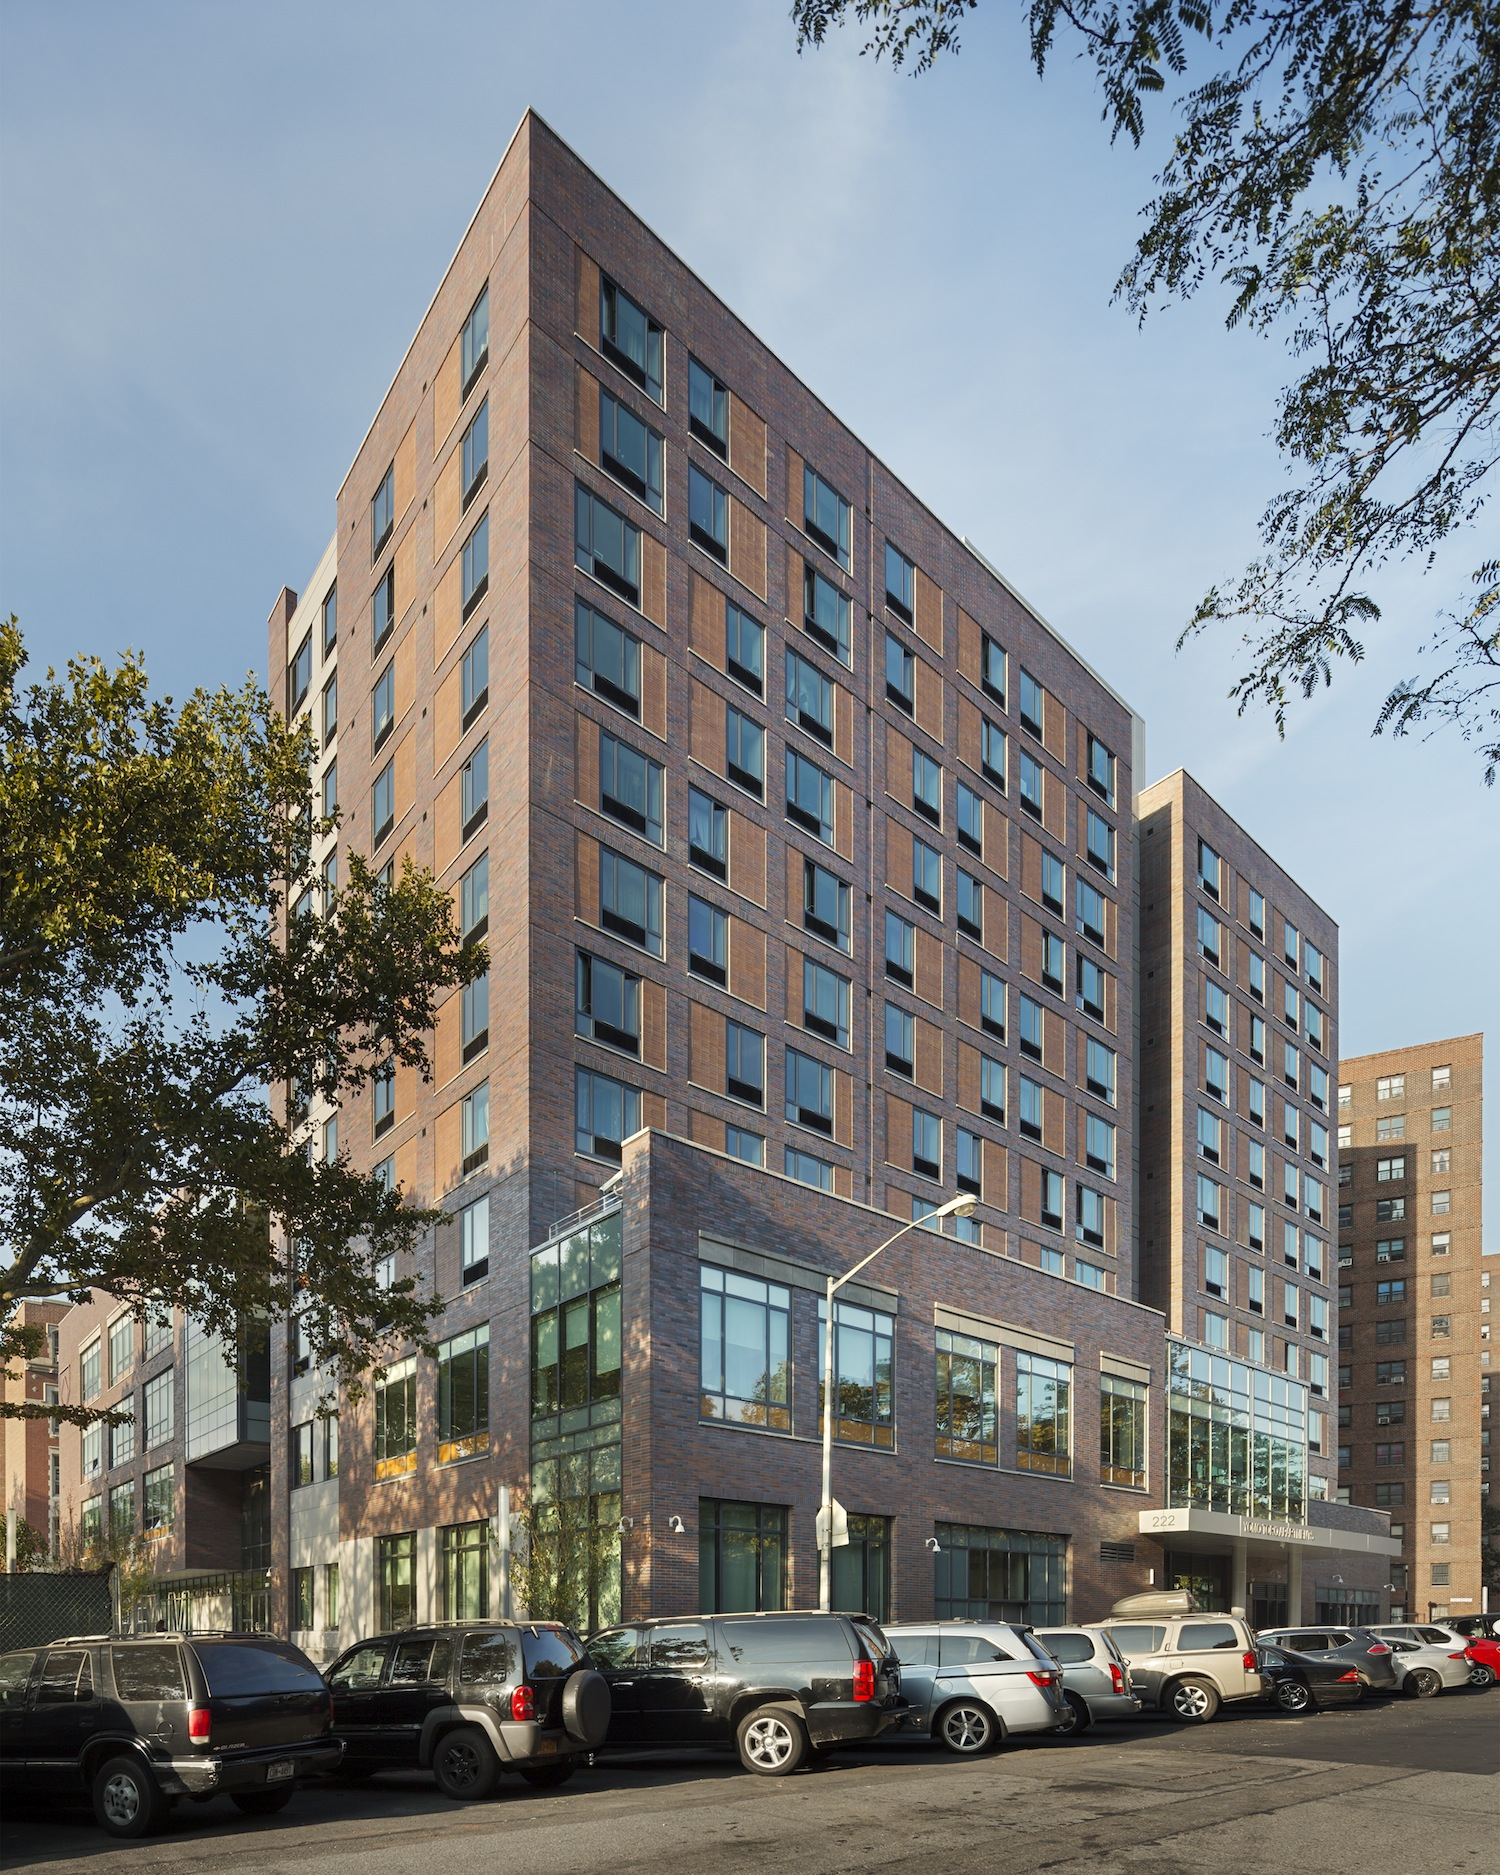 Harlem New York Apartments: Partners Create Mixed-Income Housing, Charter School In